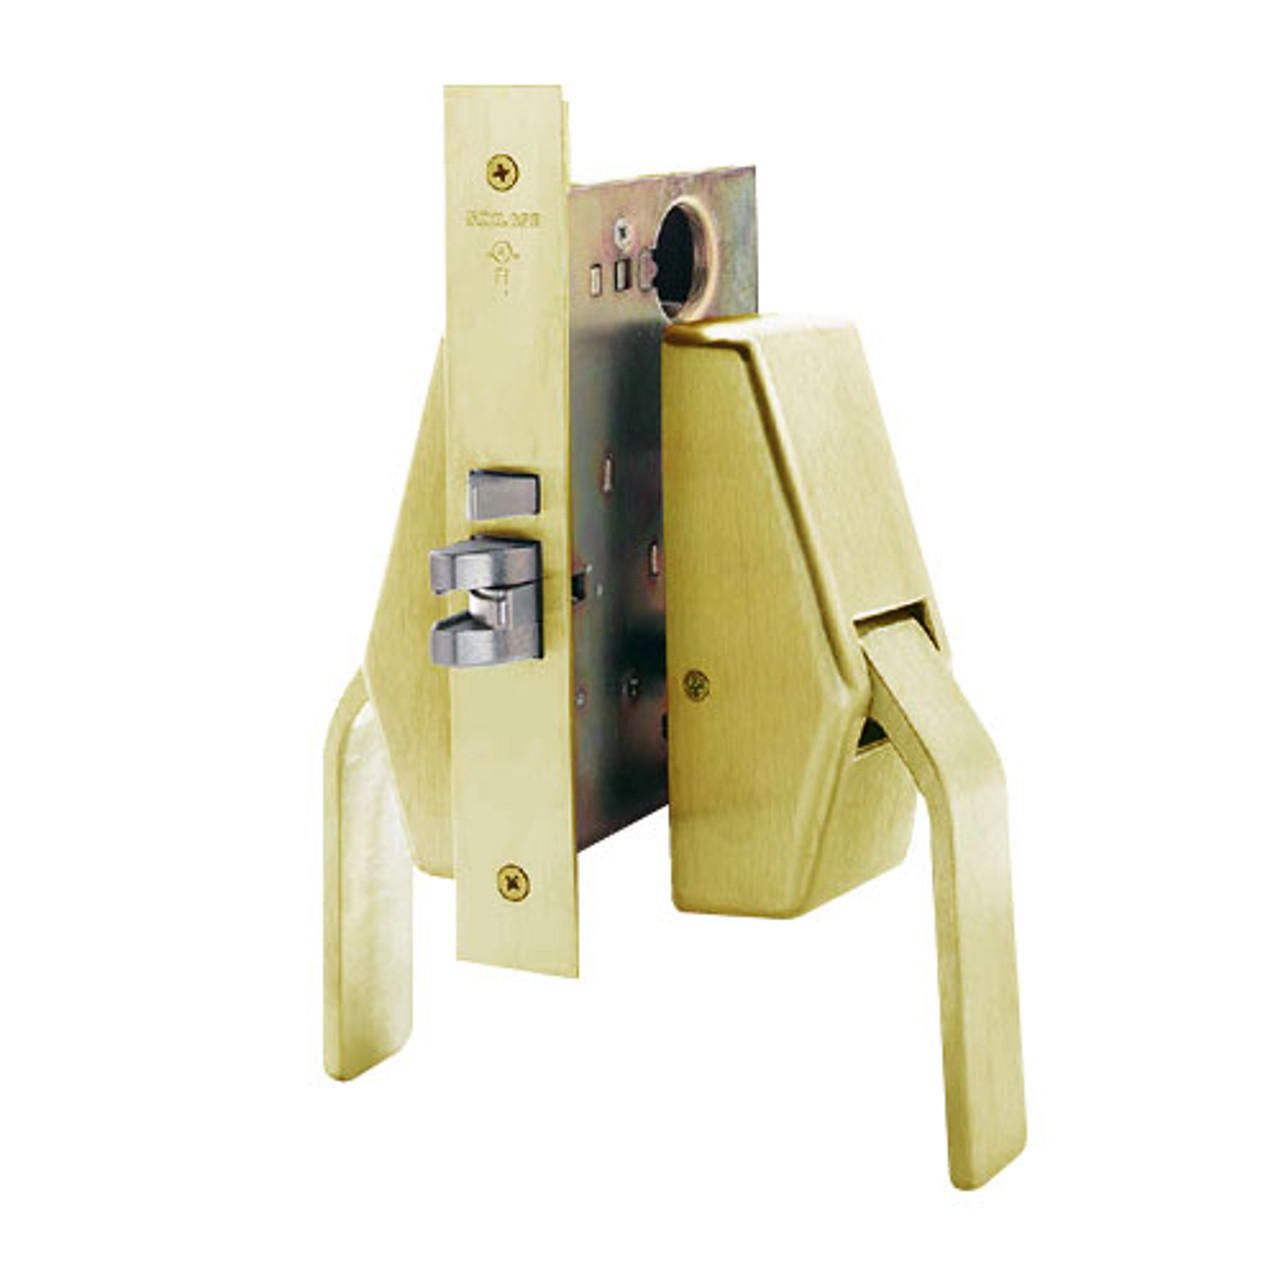 HL6-9082-606 Glynn Johnson HL6 Series Institution Function Push and Pull latch with Mortise Lock in Satin Brass Finish